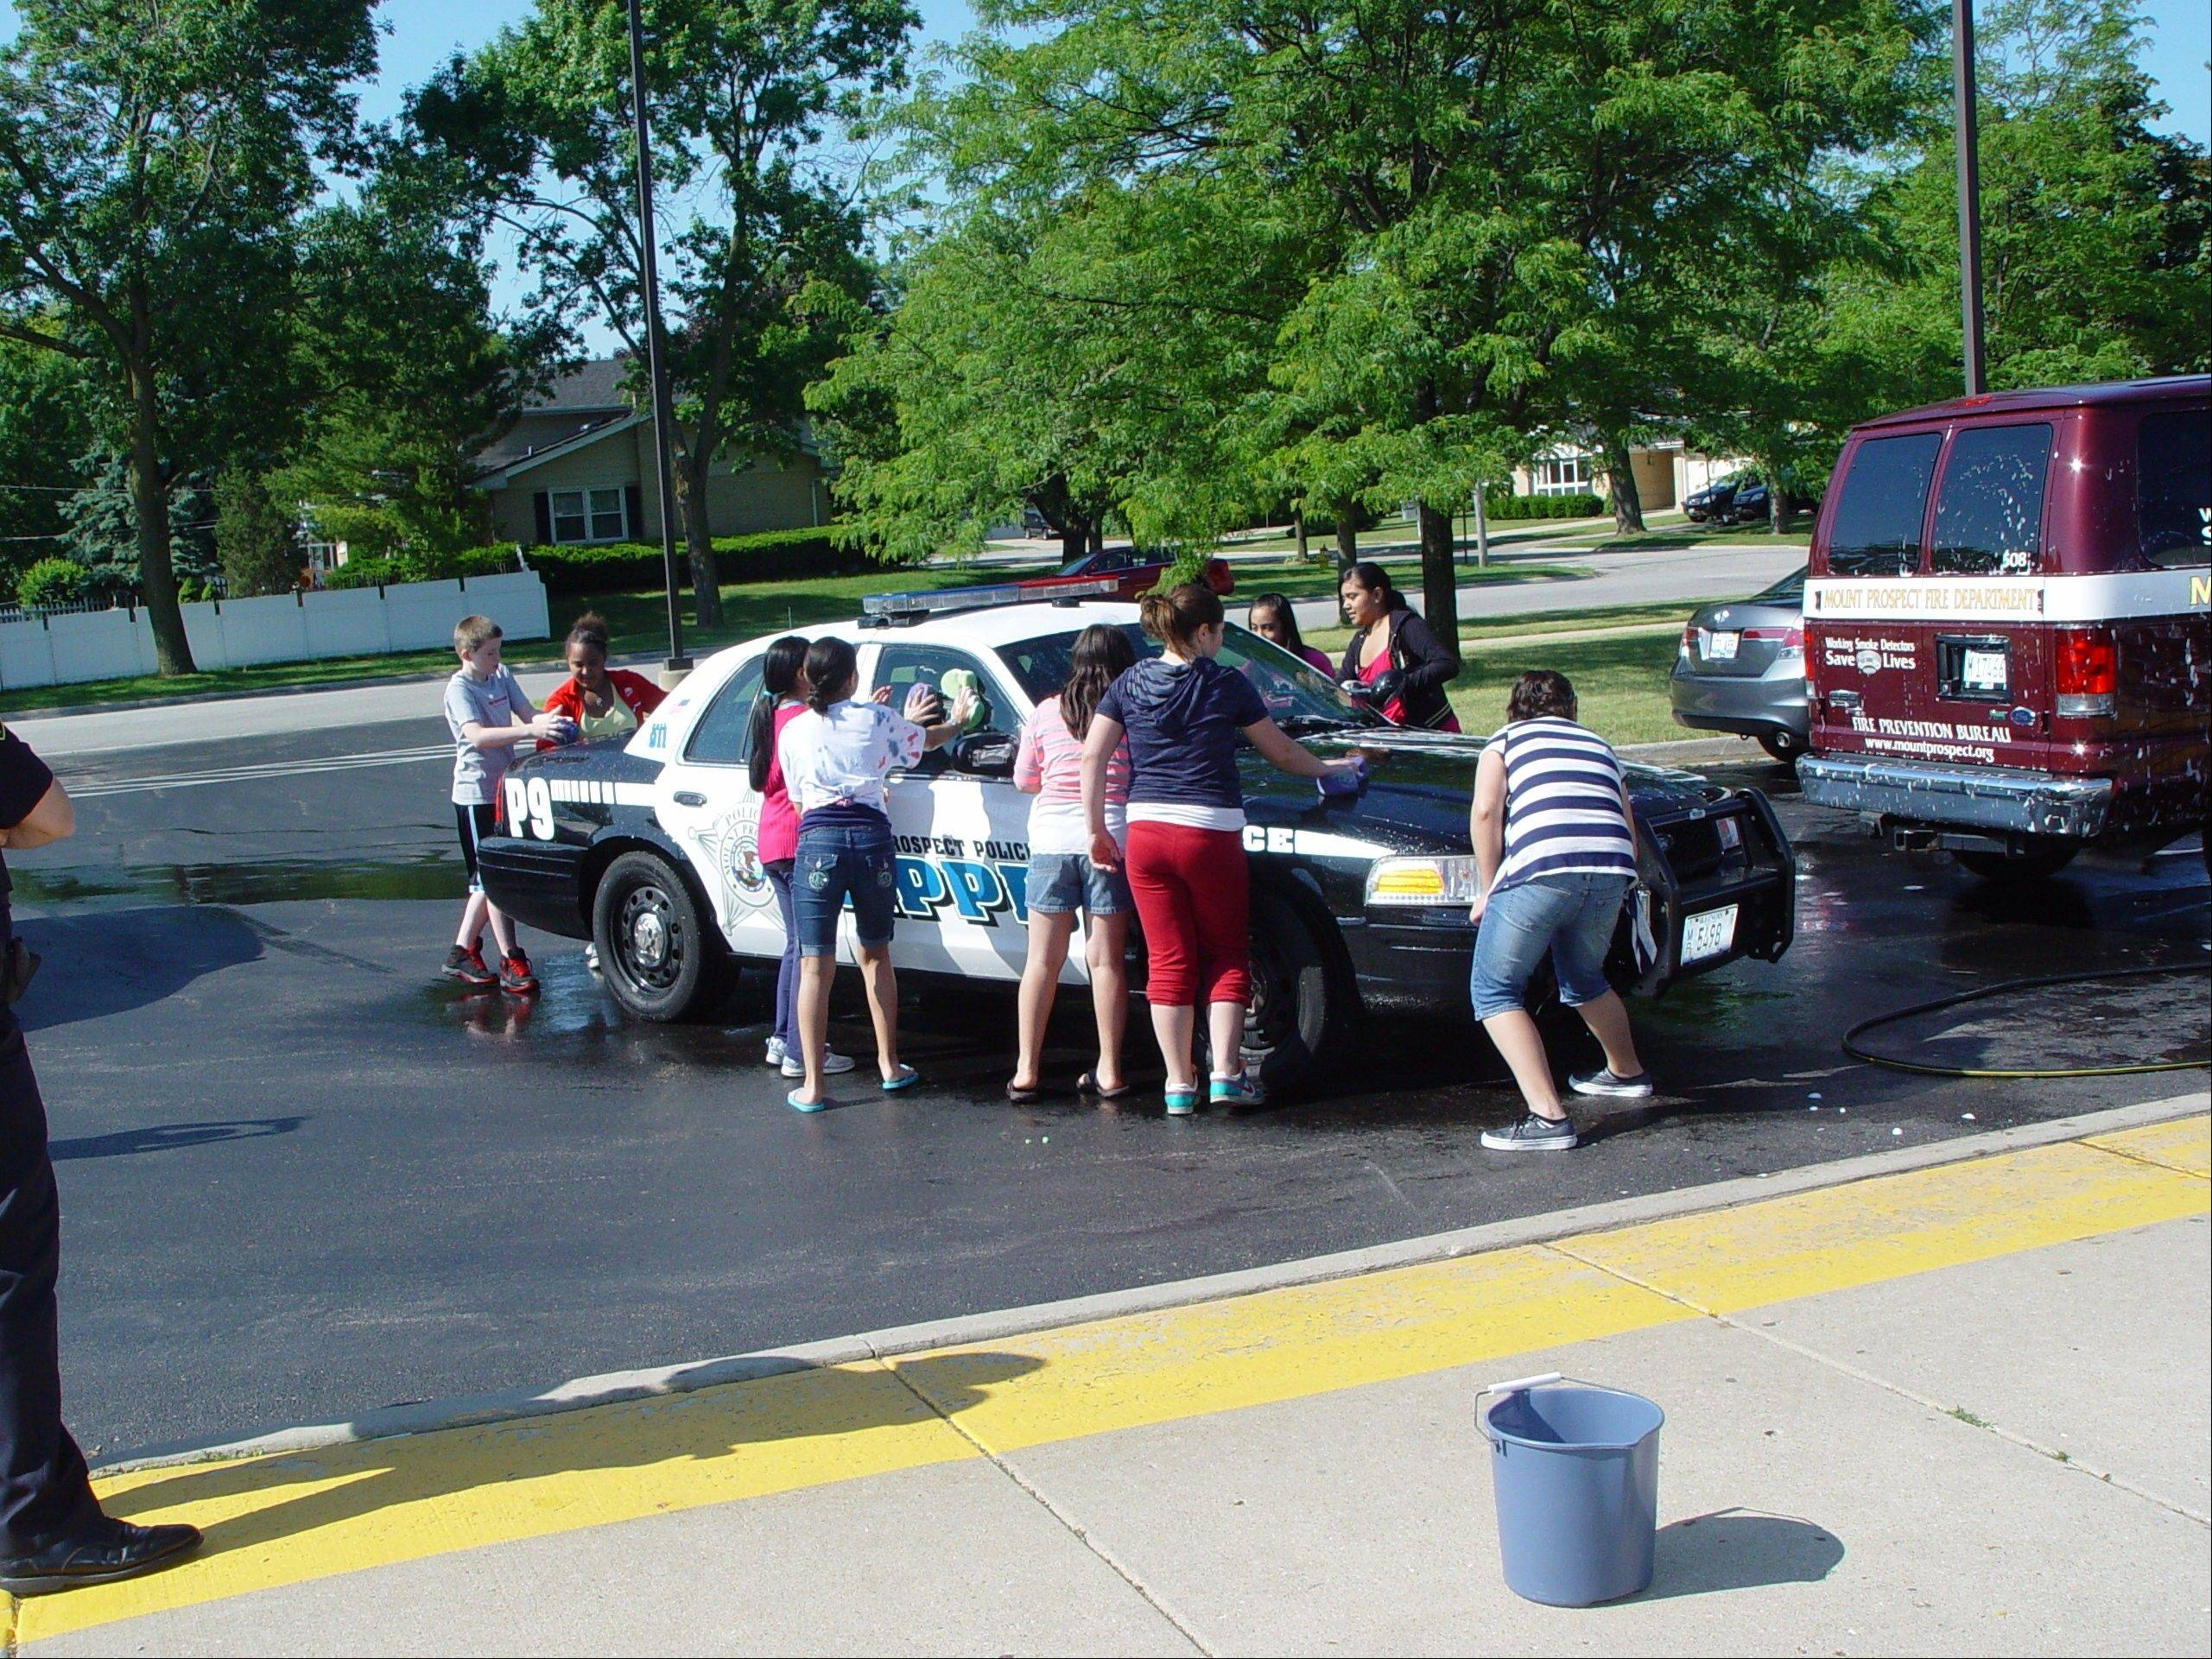 Holmes Junior High students wash a Mount Prospect police vehicle during a free community car wash, as part of their many day of service activities.